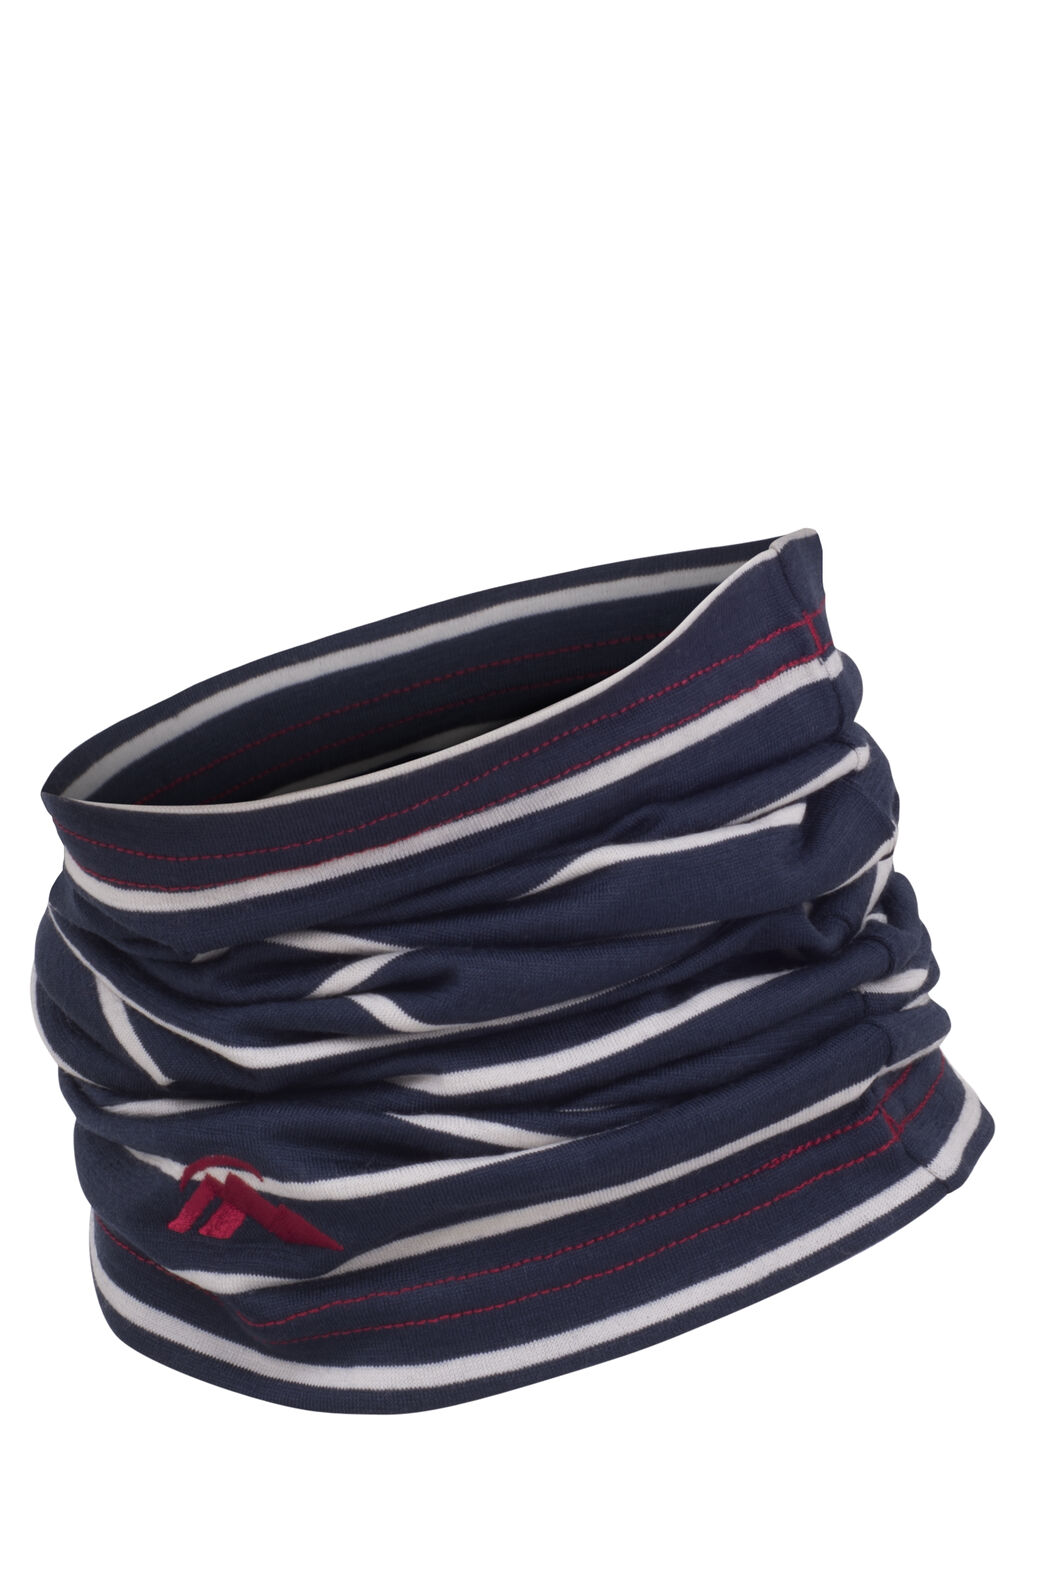 Merino 150 Neck Gaiter, Black Iris Stripe, hi-res